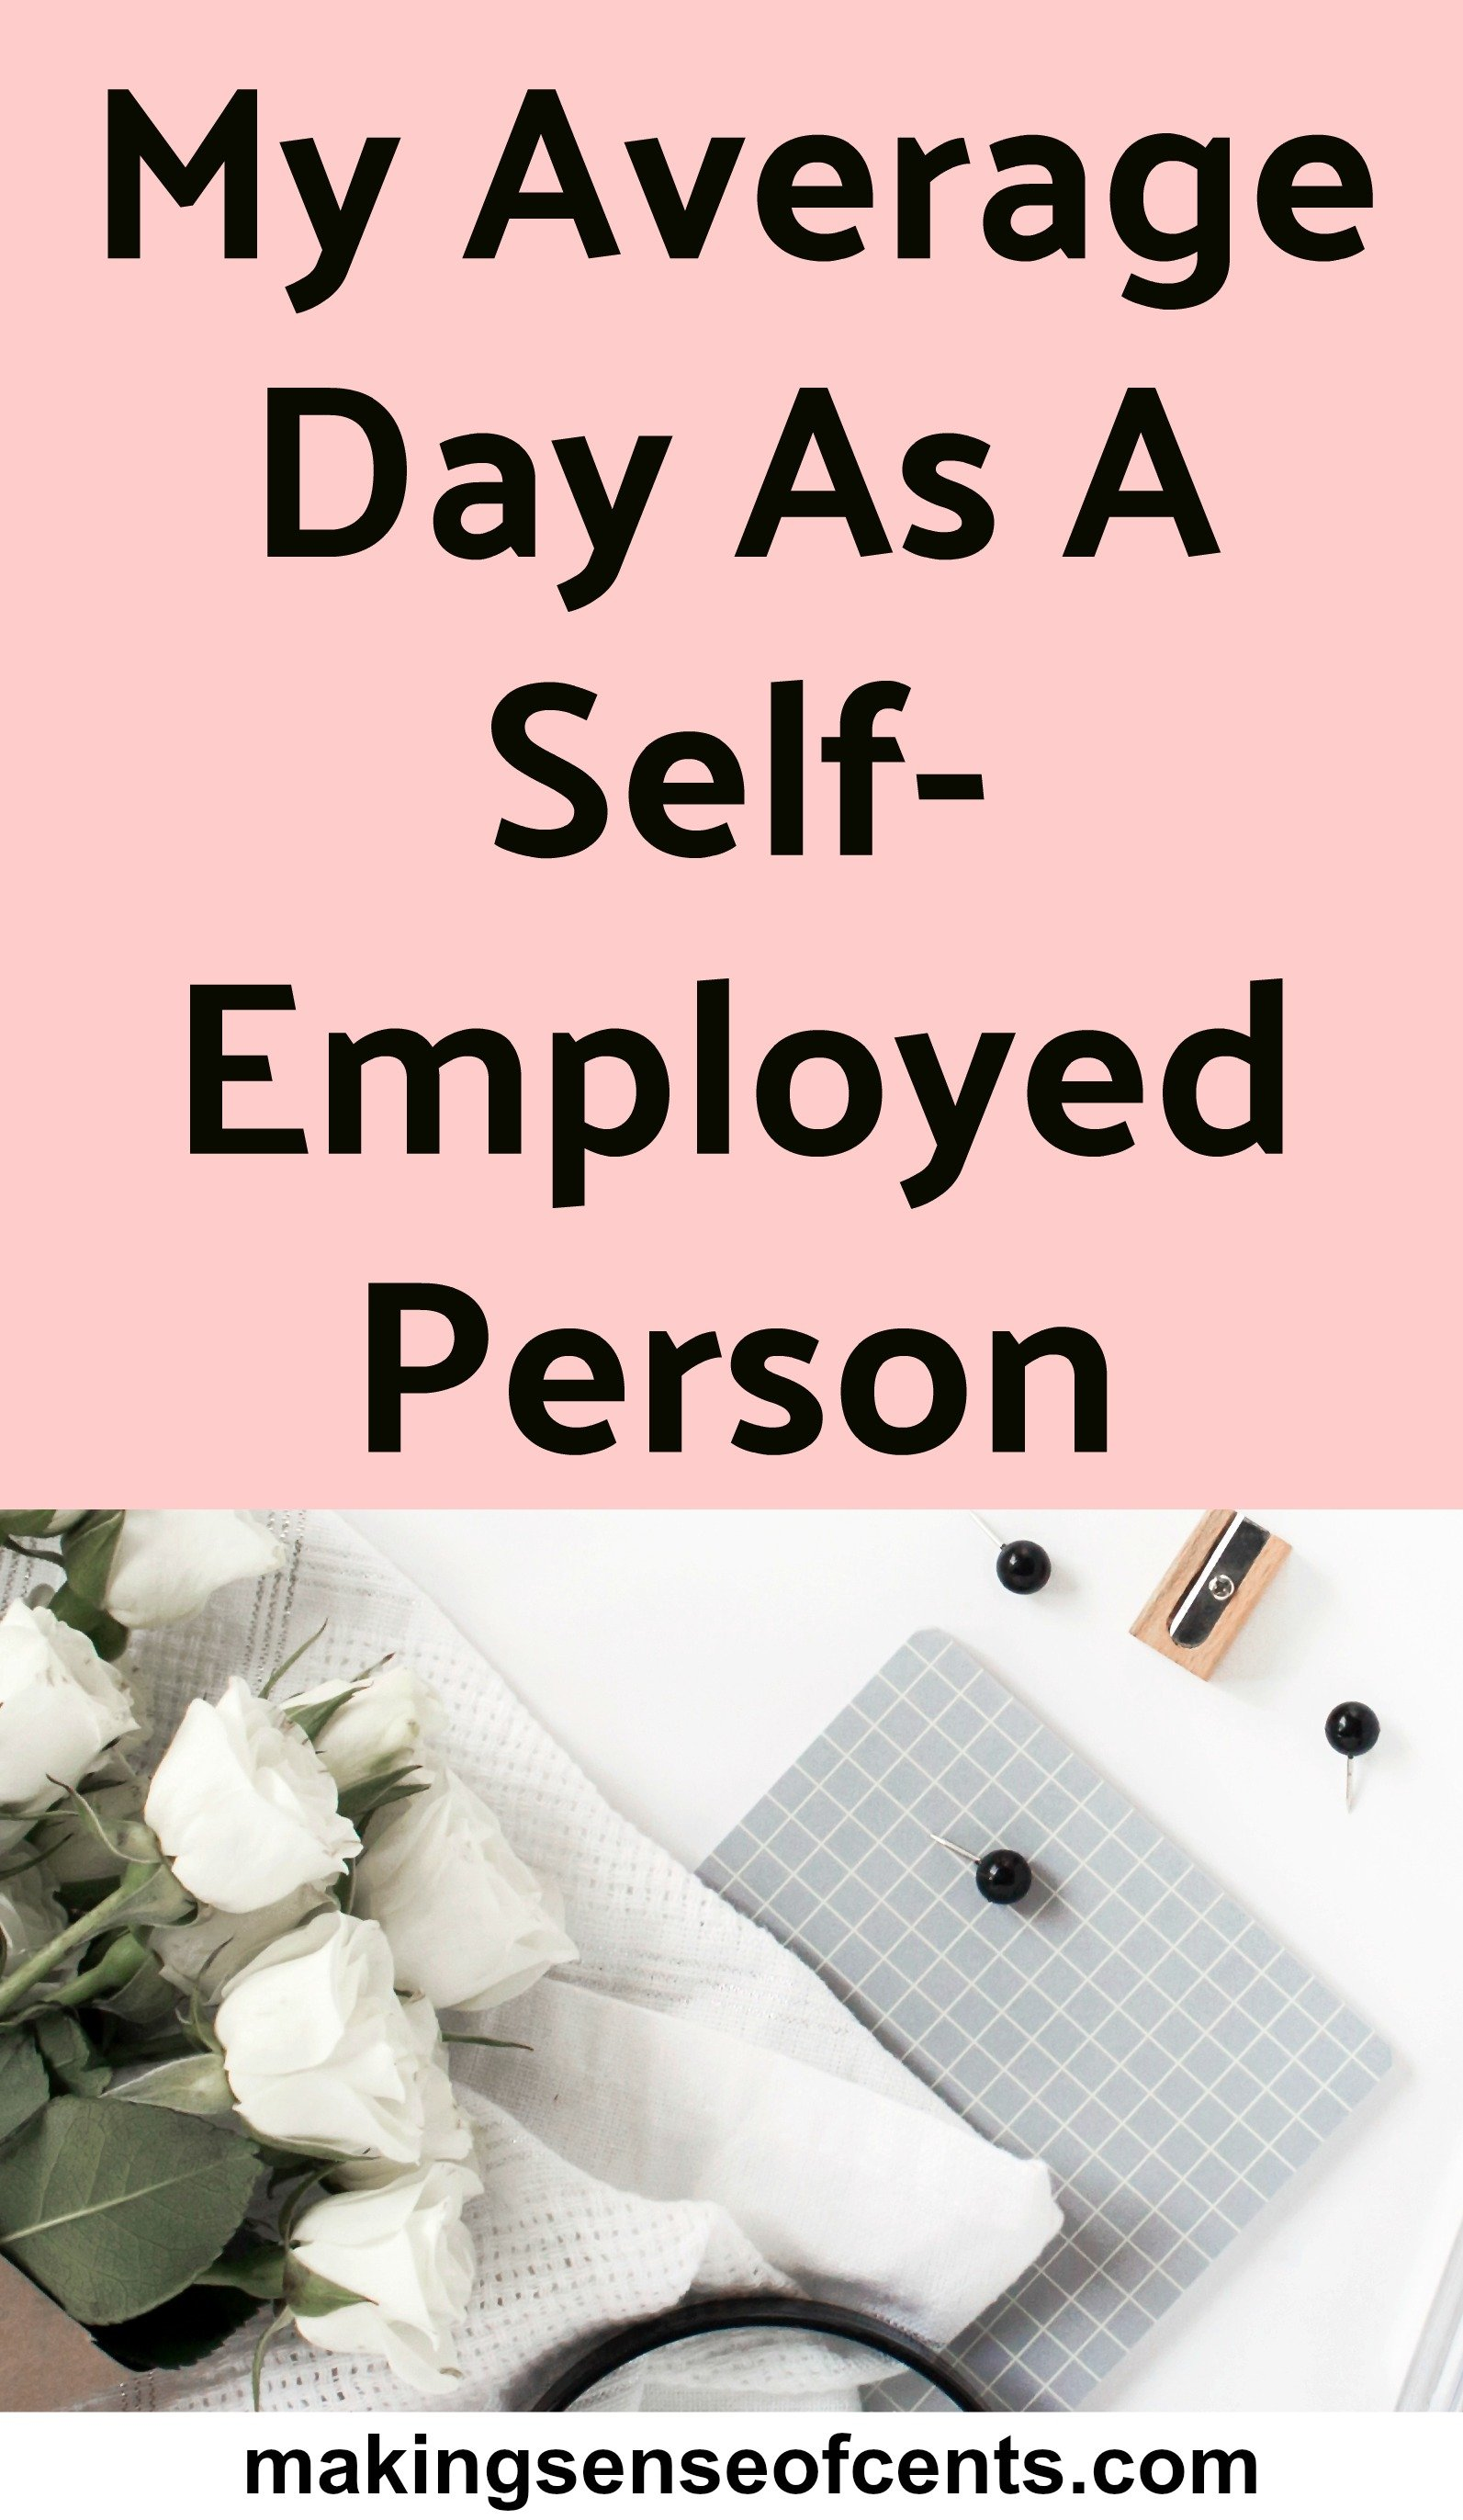 My Average Day As A Self-Employed Person